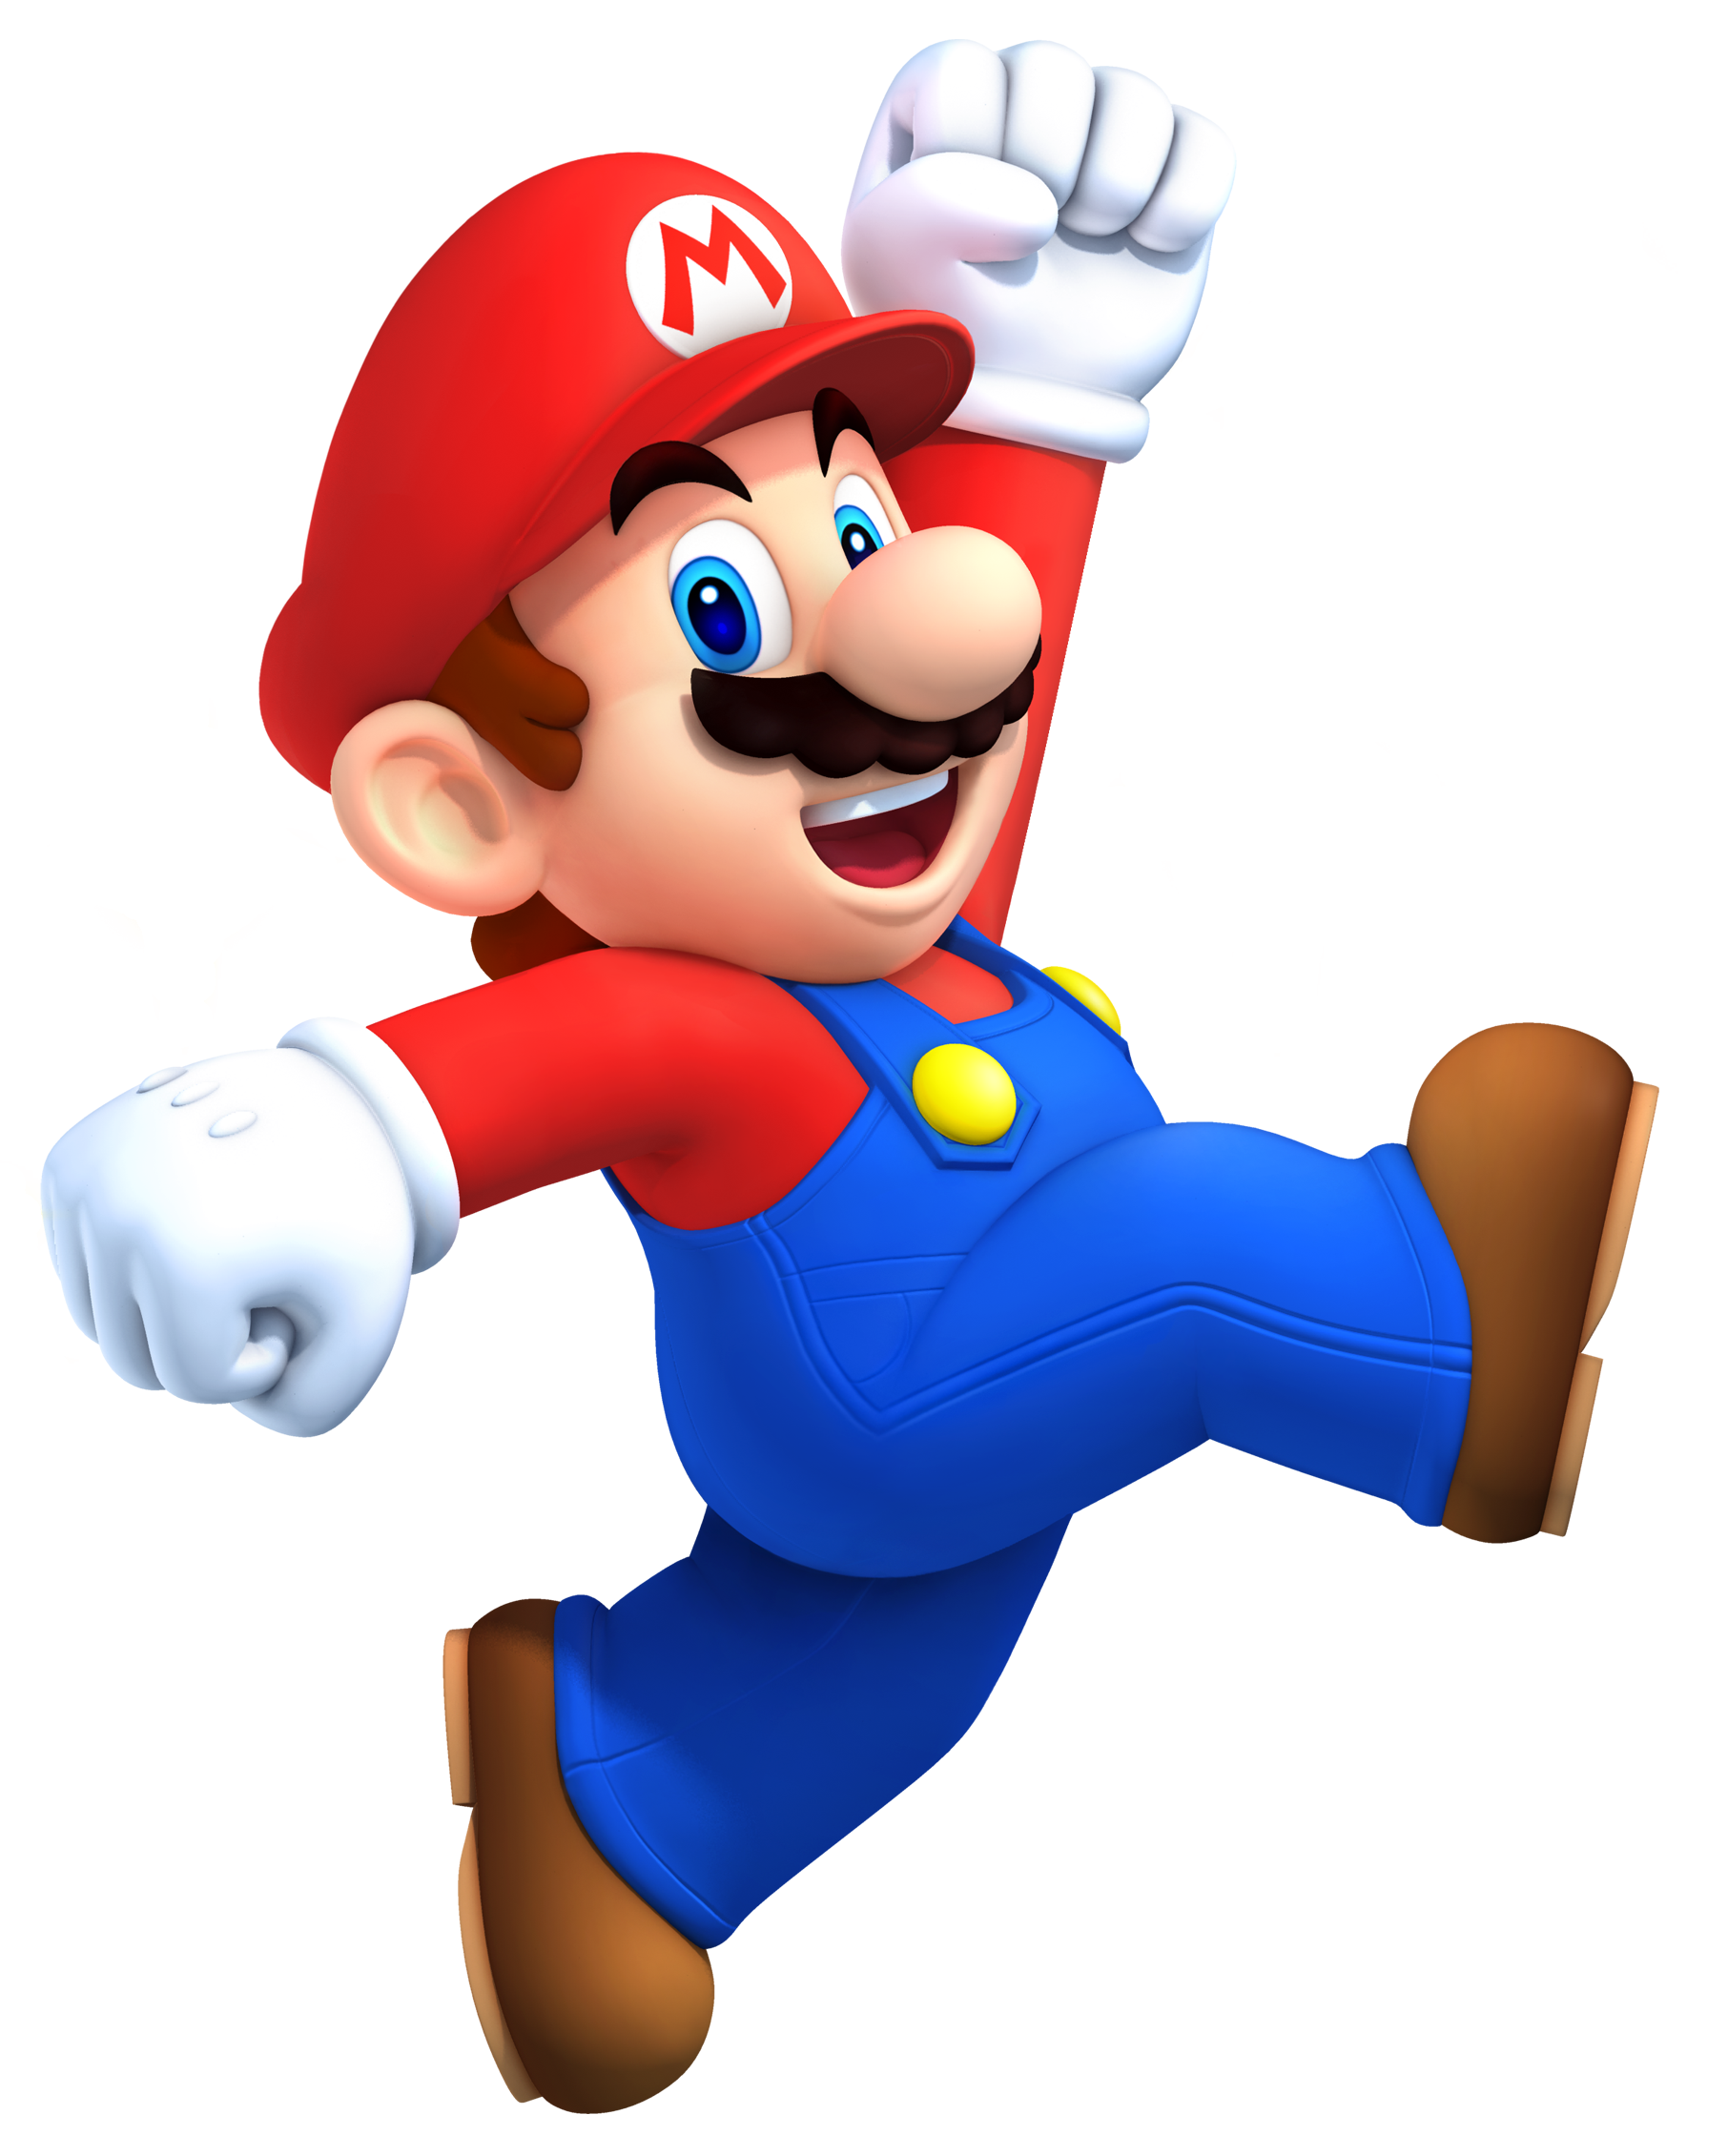 png download transparent mario jumping #106066441